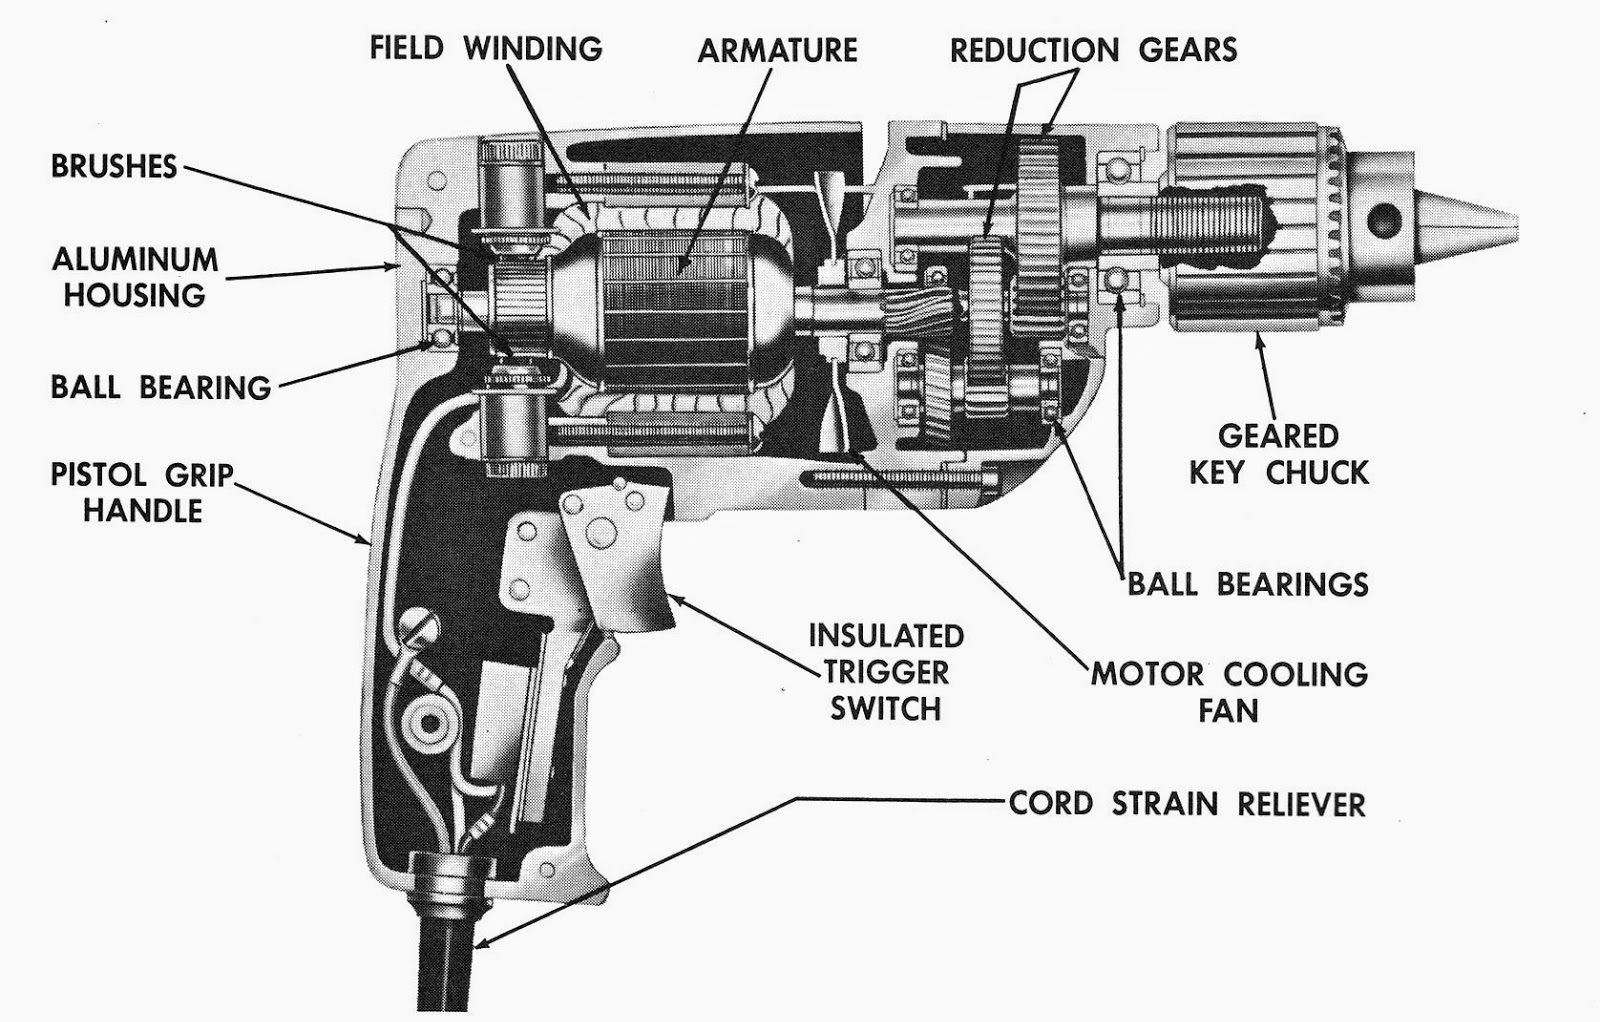 hight resolution of image result for parts of an electric drill drill electric drill press hole